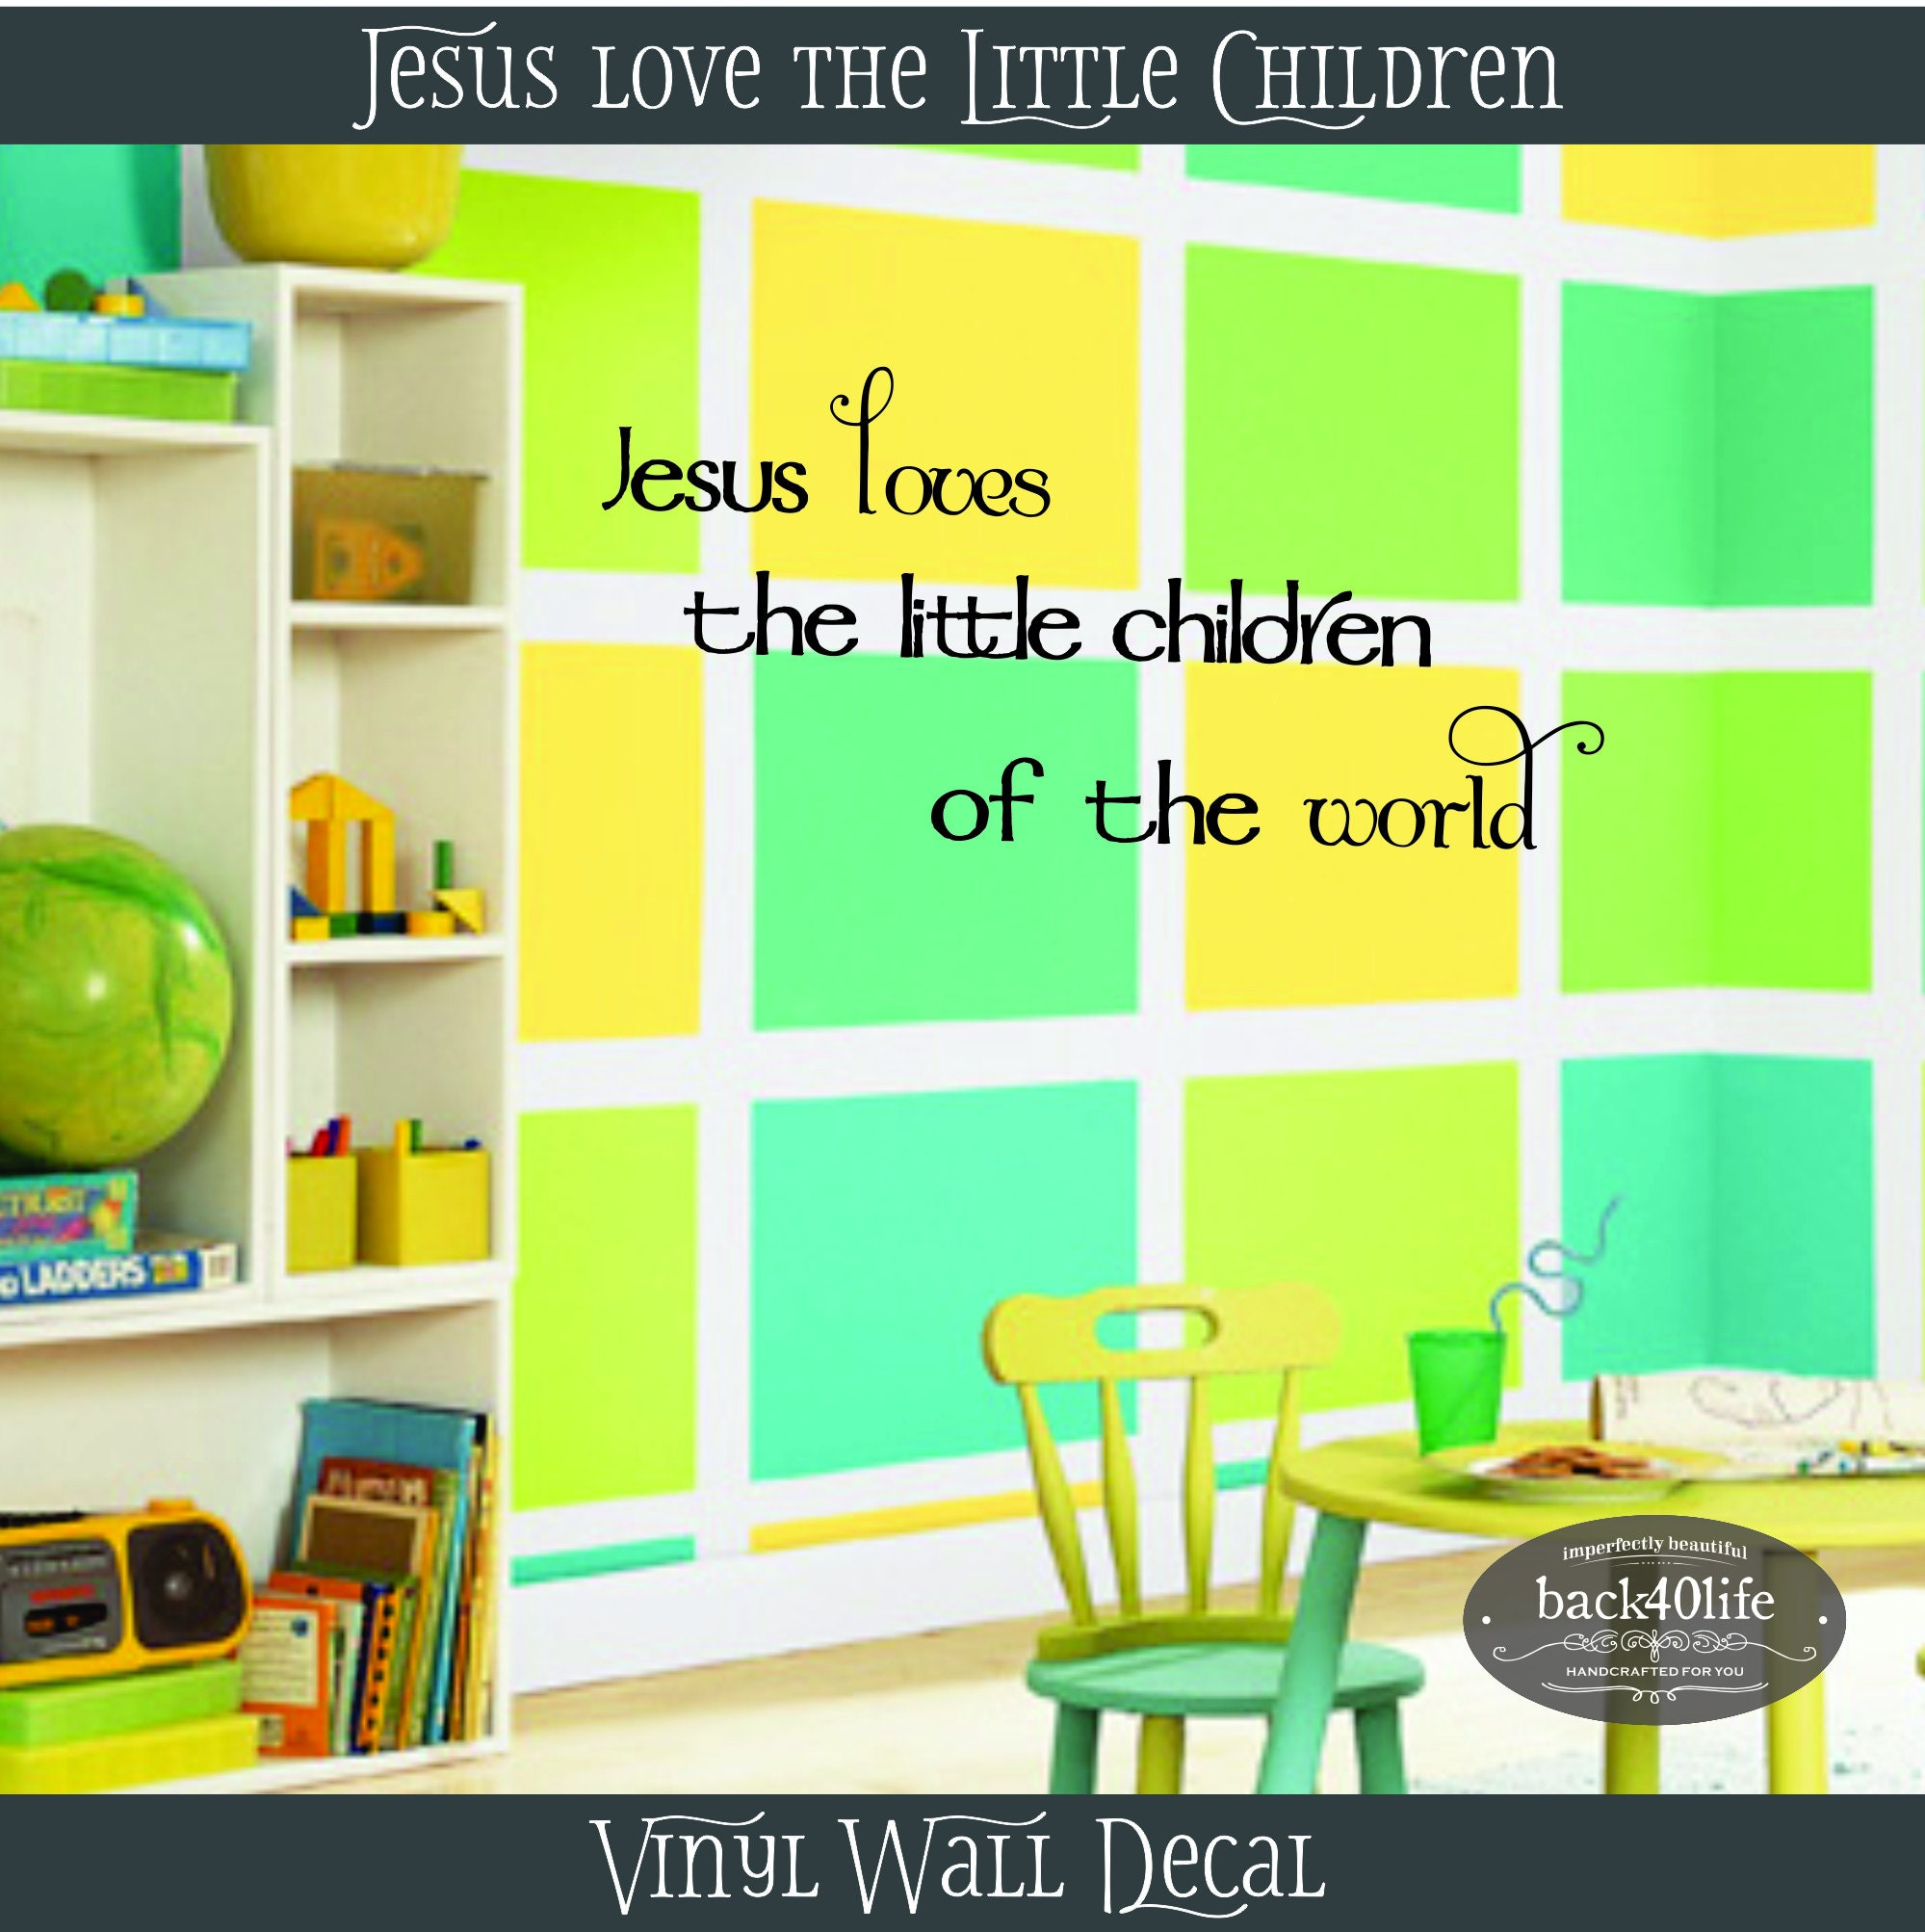 Jesus Loves the Little Children Vinyl Wall Decal K-042